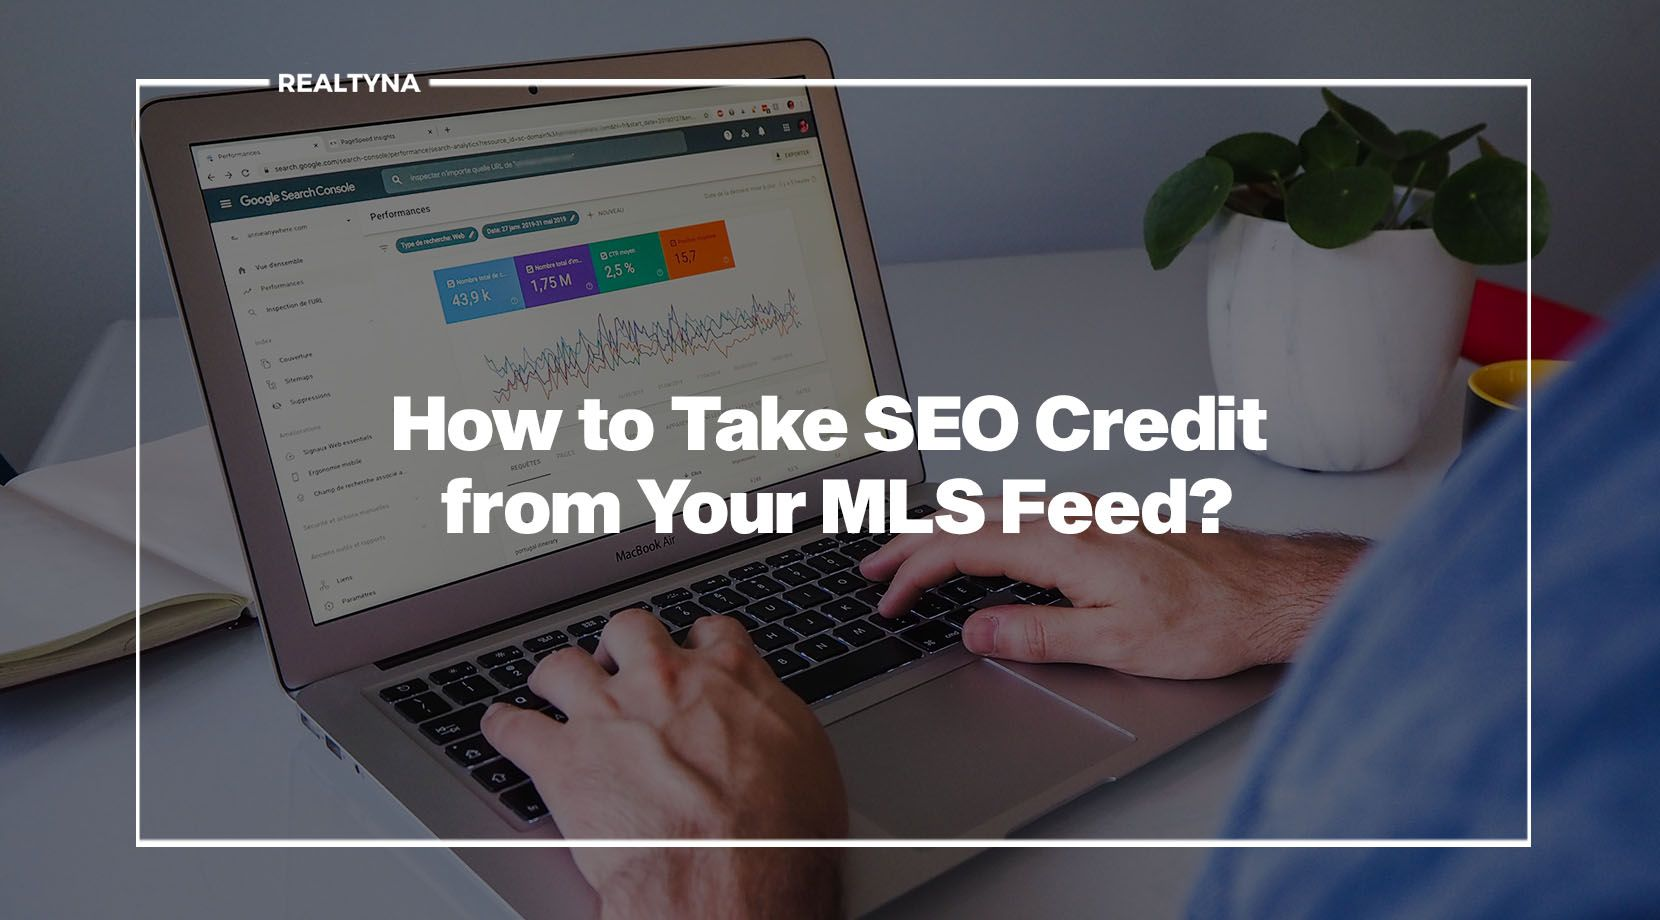 How to Take SEO Credit from Your MLS Feed